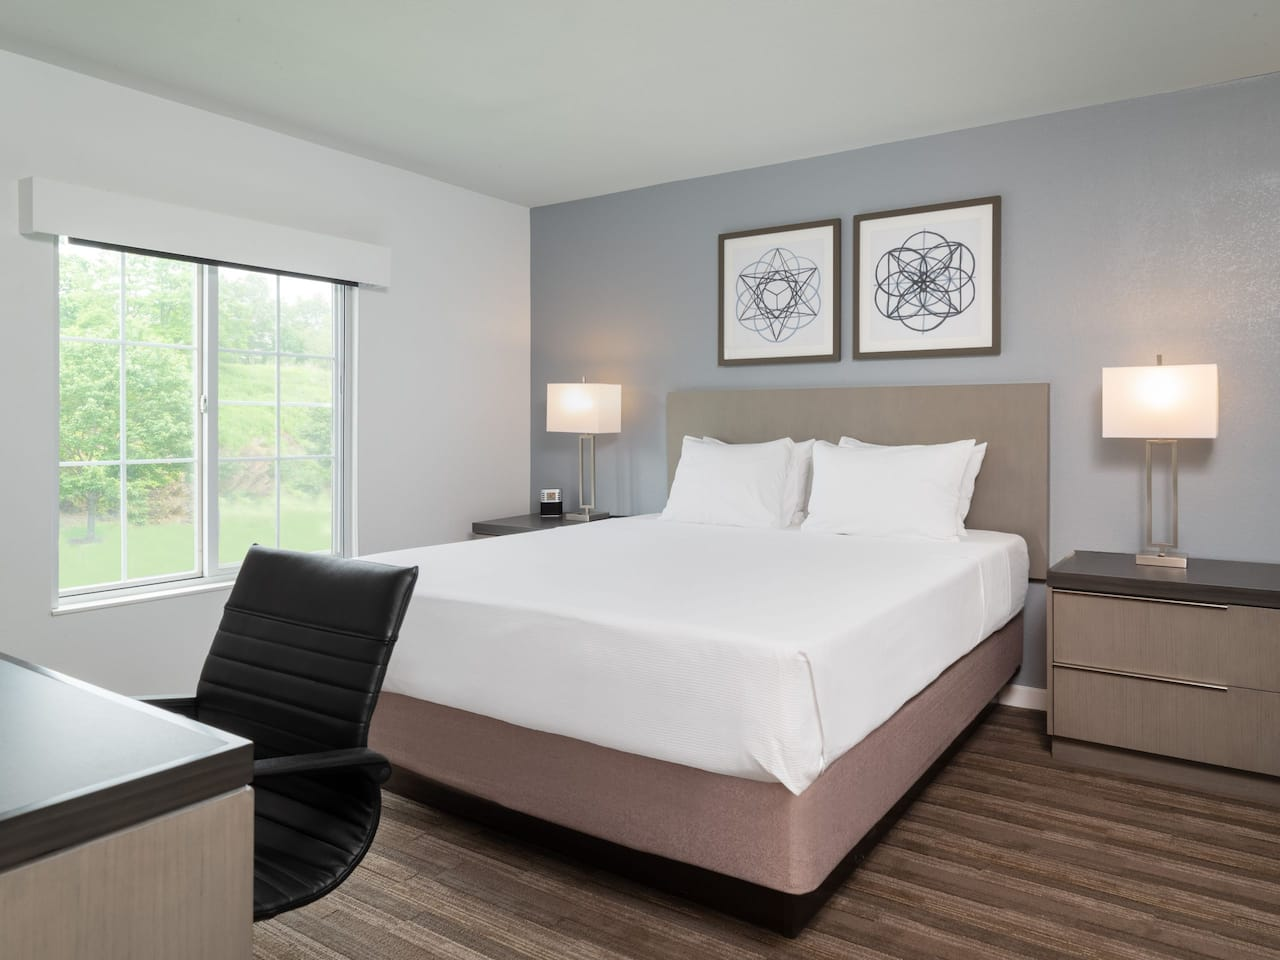 Accessible 1 queen bed hyatt house plains